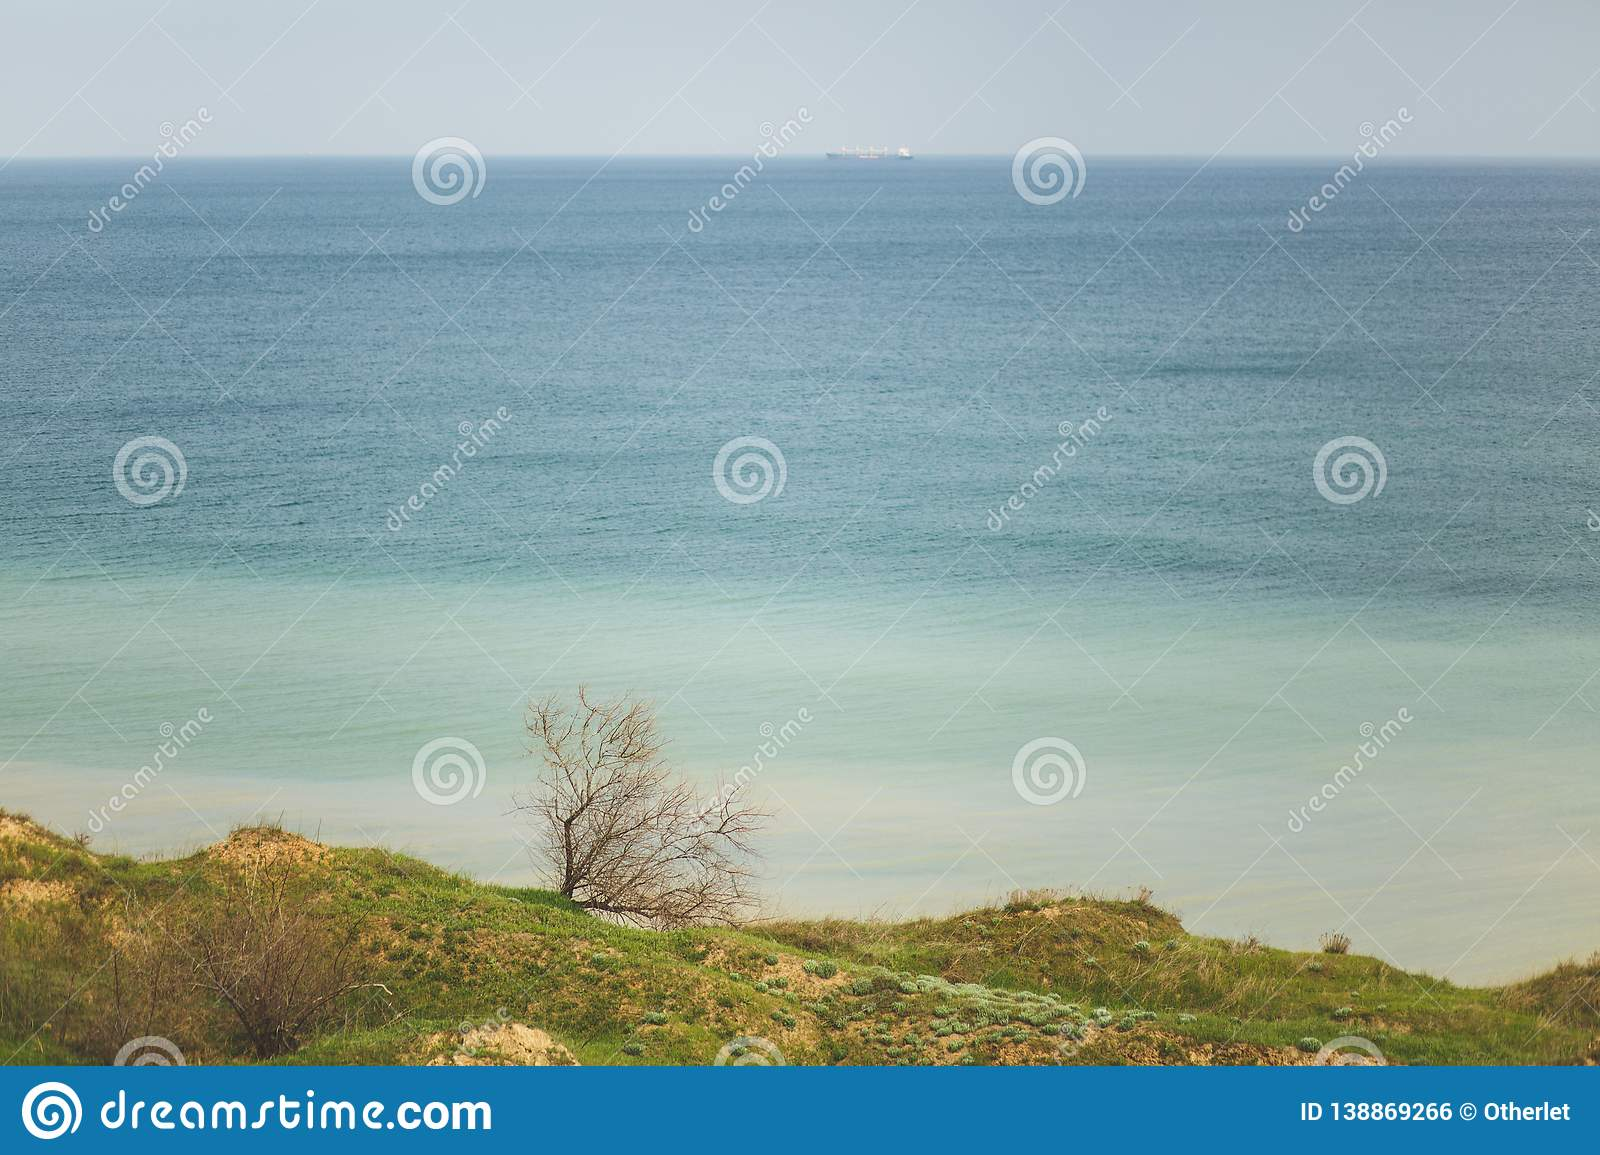 Coastline Green grasses field with trees and bushes near water ocean or sea. Beautiful landscape. Environment, nature